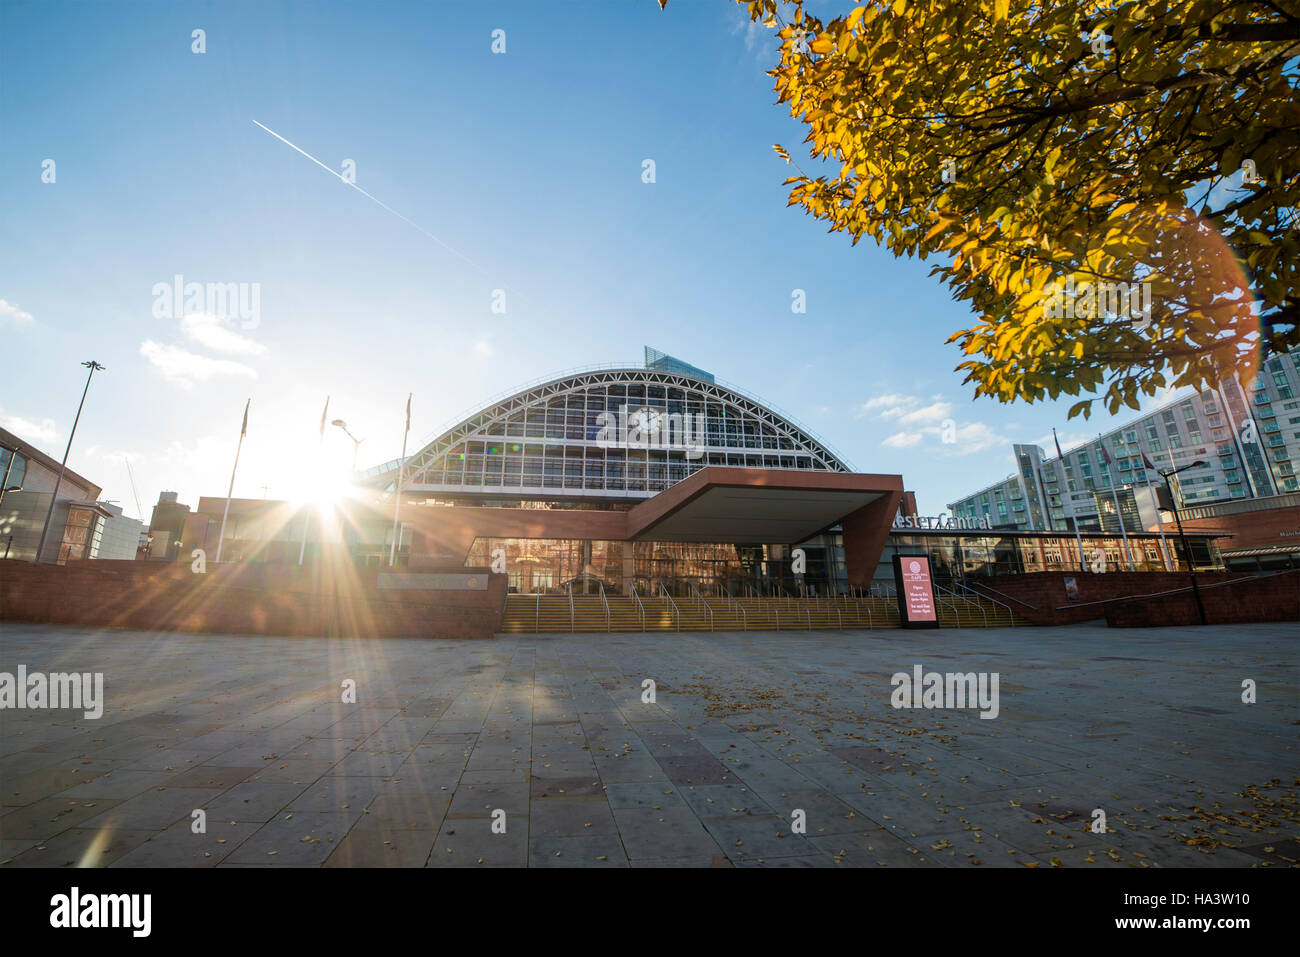 Manchester Central, formally the G-MEX centre. - Stock Image